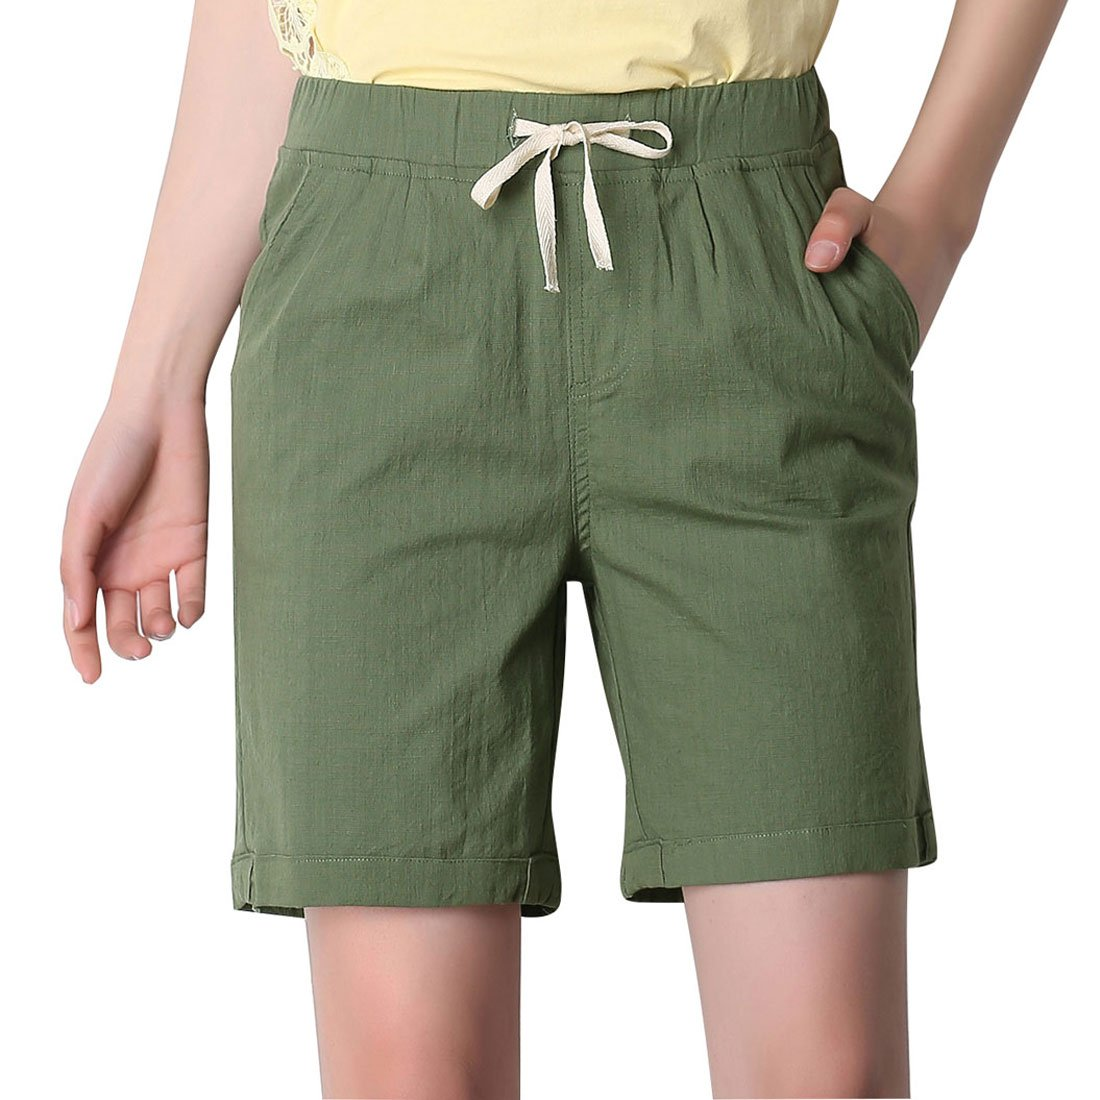 Chartou Women's Modest Loose Elastic-Waisted Bermuda Drawstring Casual Shorts (Large, Army Green)